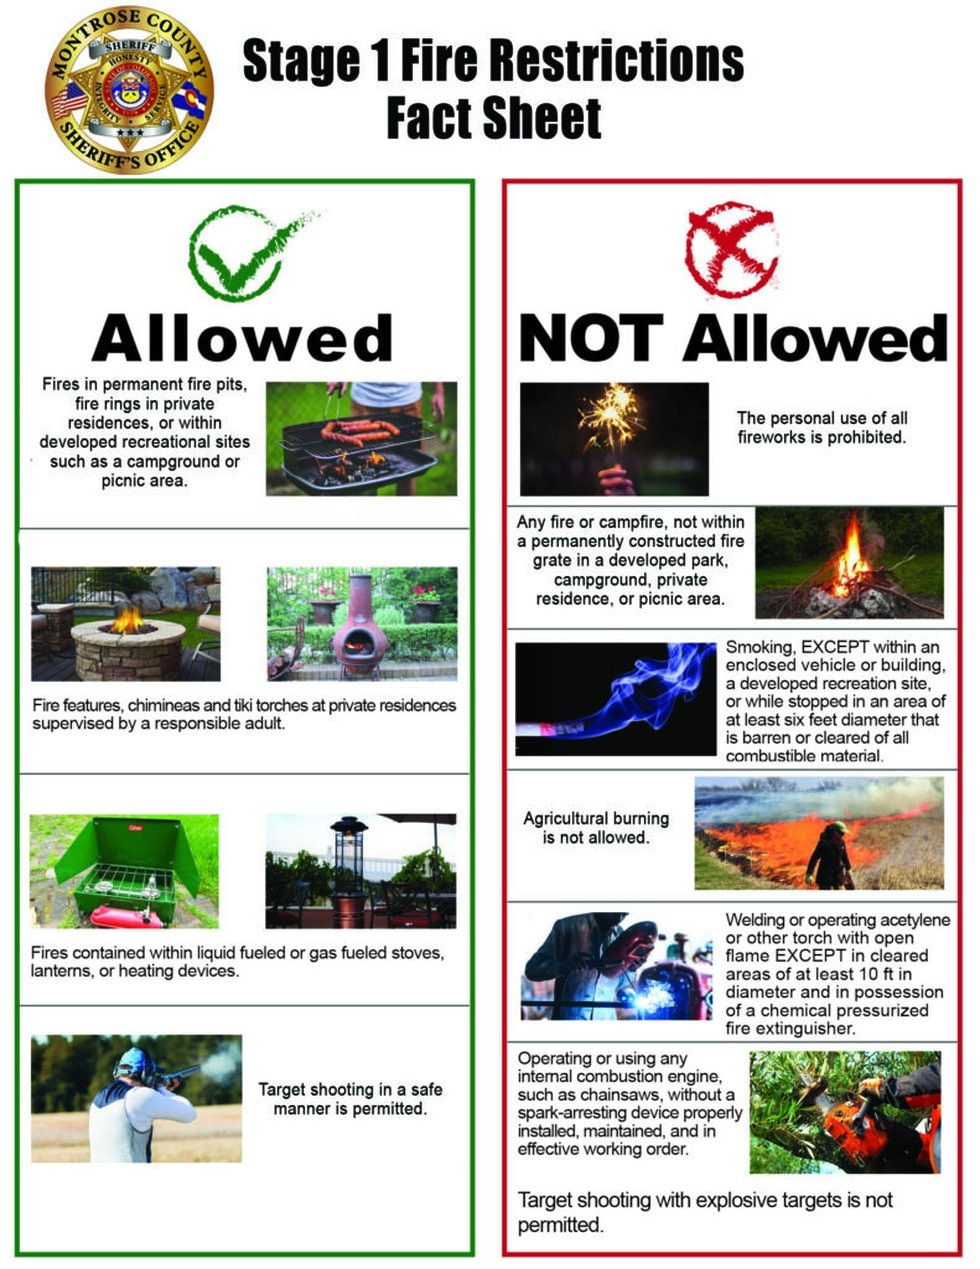 Montrose County Stage 1 Fire Restrictions